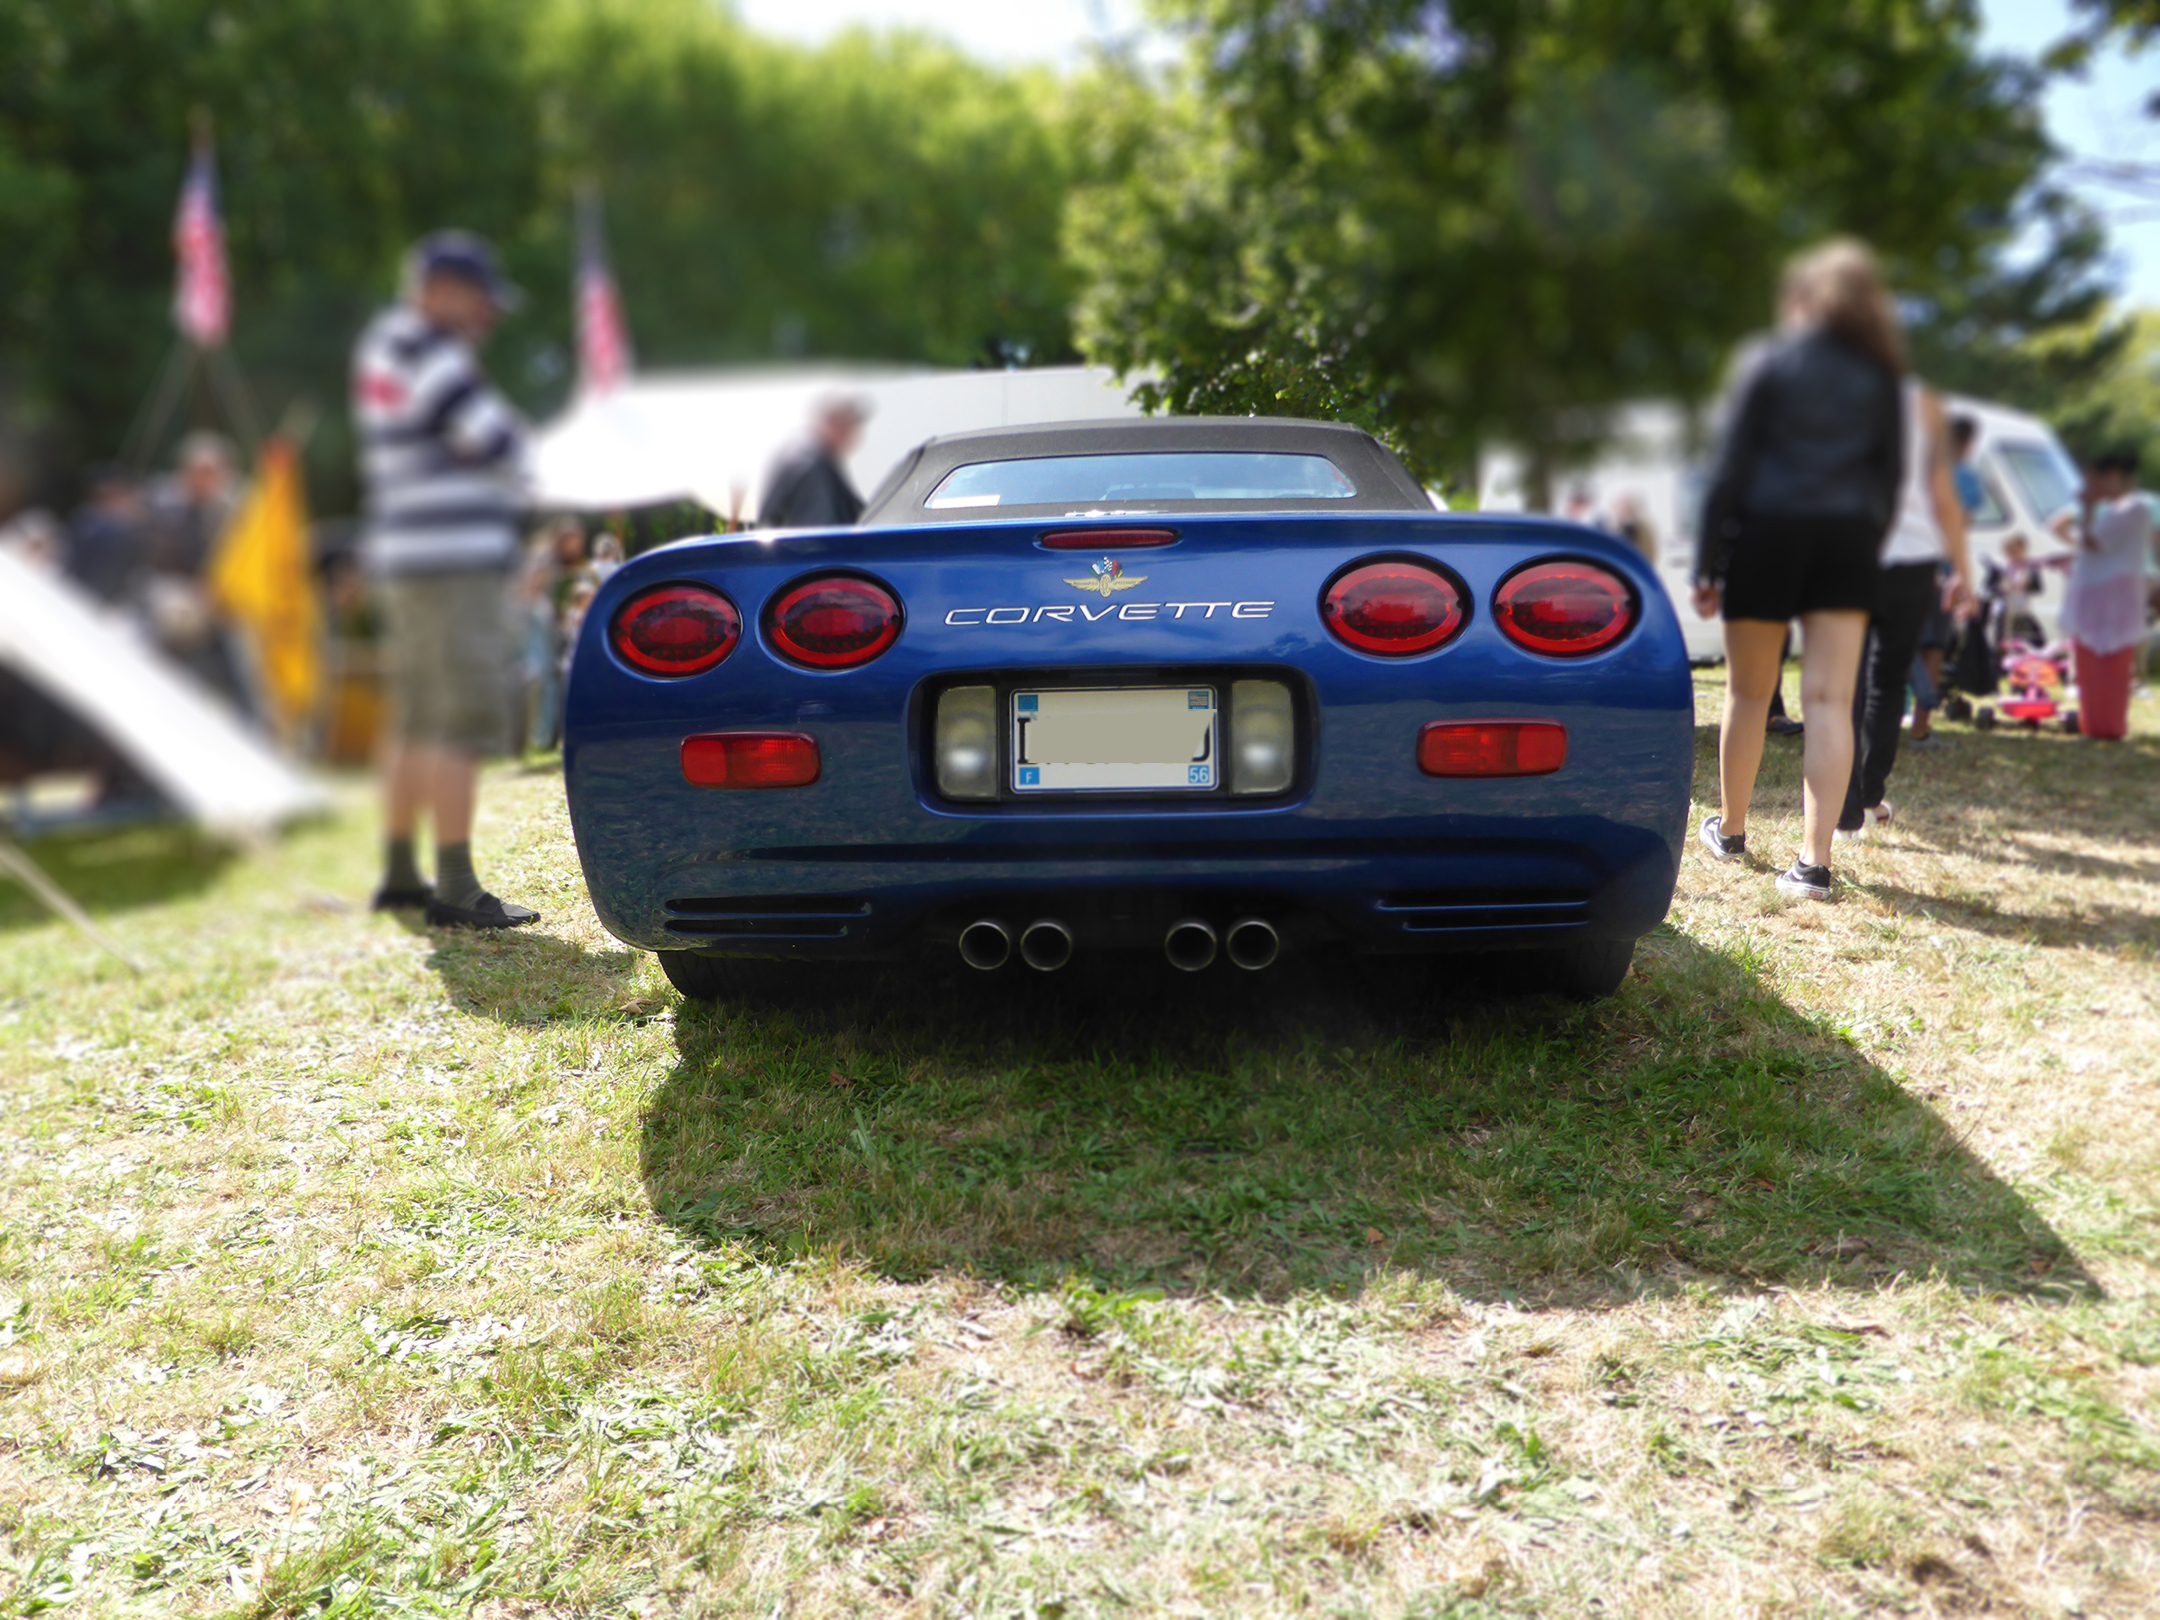 Chevrolet Corvette - 2003 - rear - US Cars and Bikes 2017 - Photo by ELJ DESIGNMOTEUR